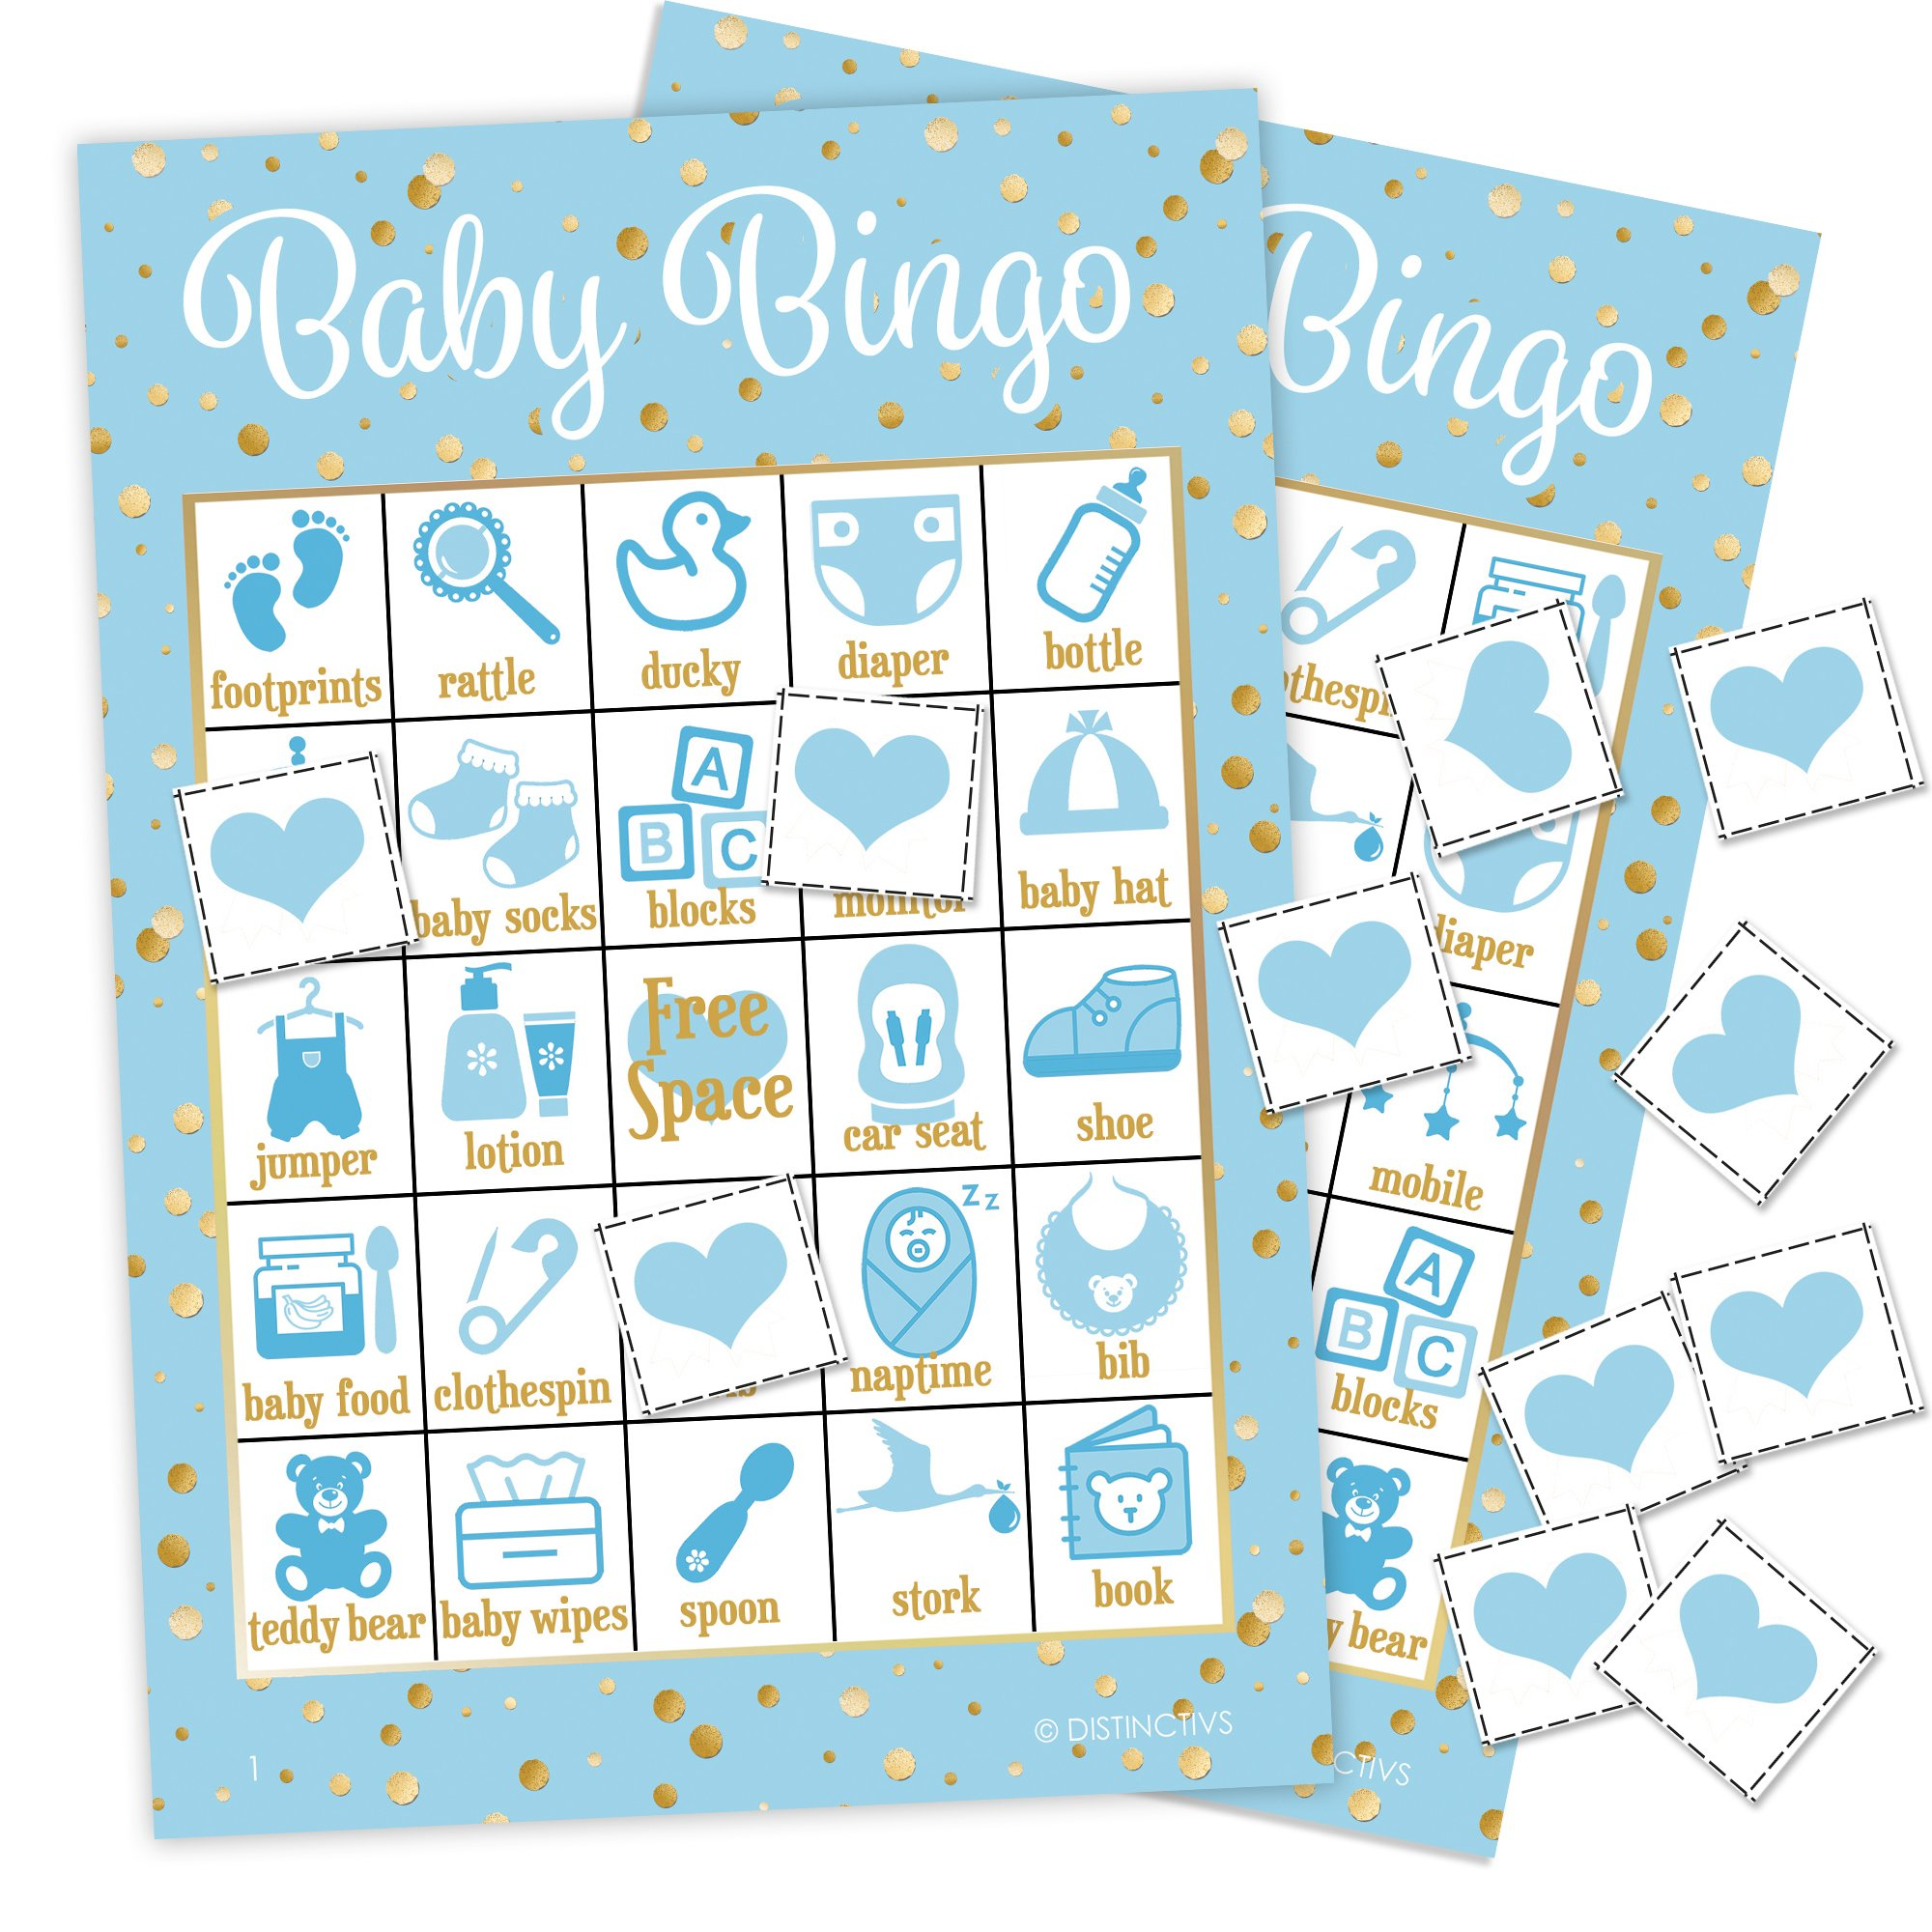 It's a Boy Baby Shower Bingo Game, Blue and Gold - 24 Guests by DISTINCTIVS